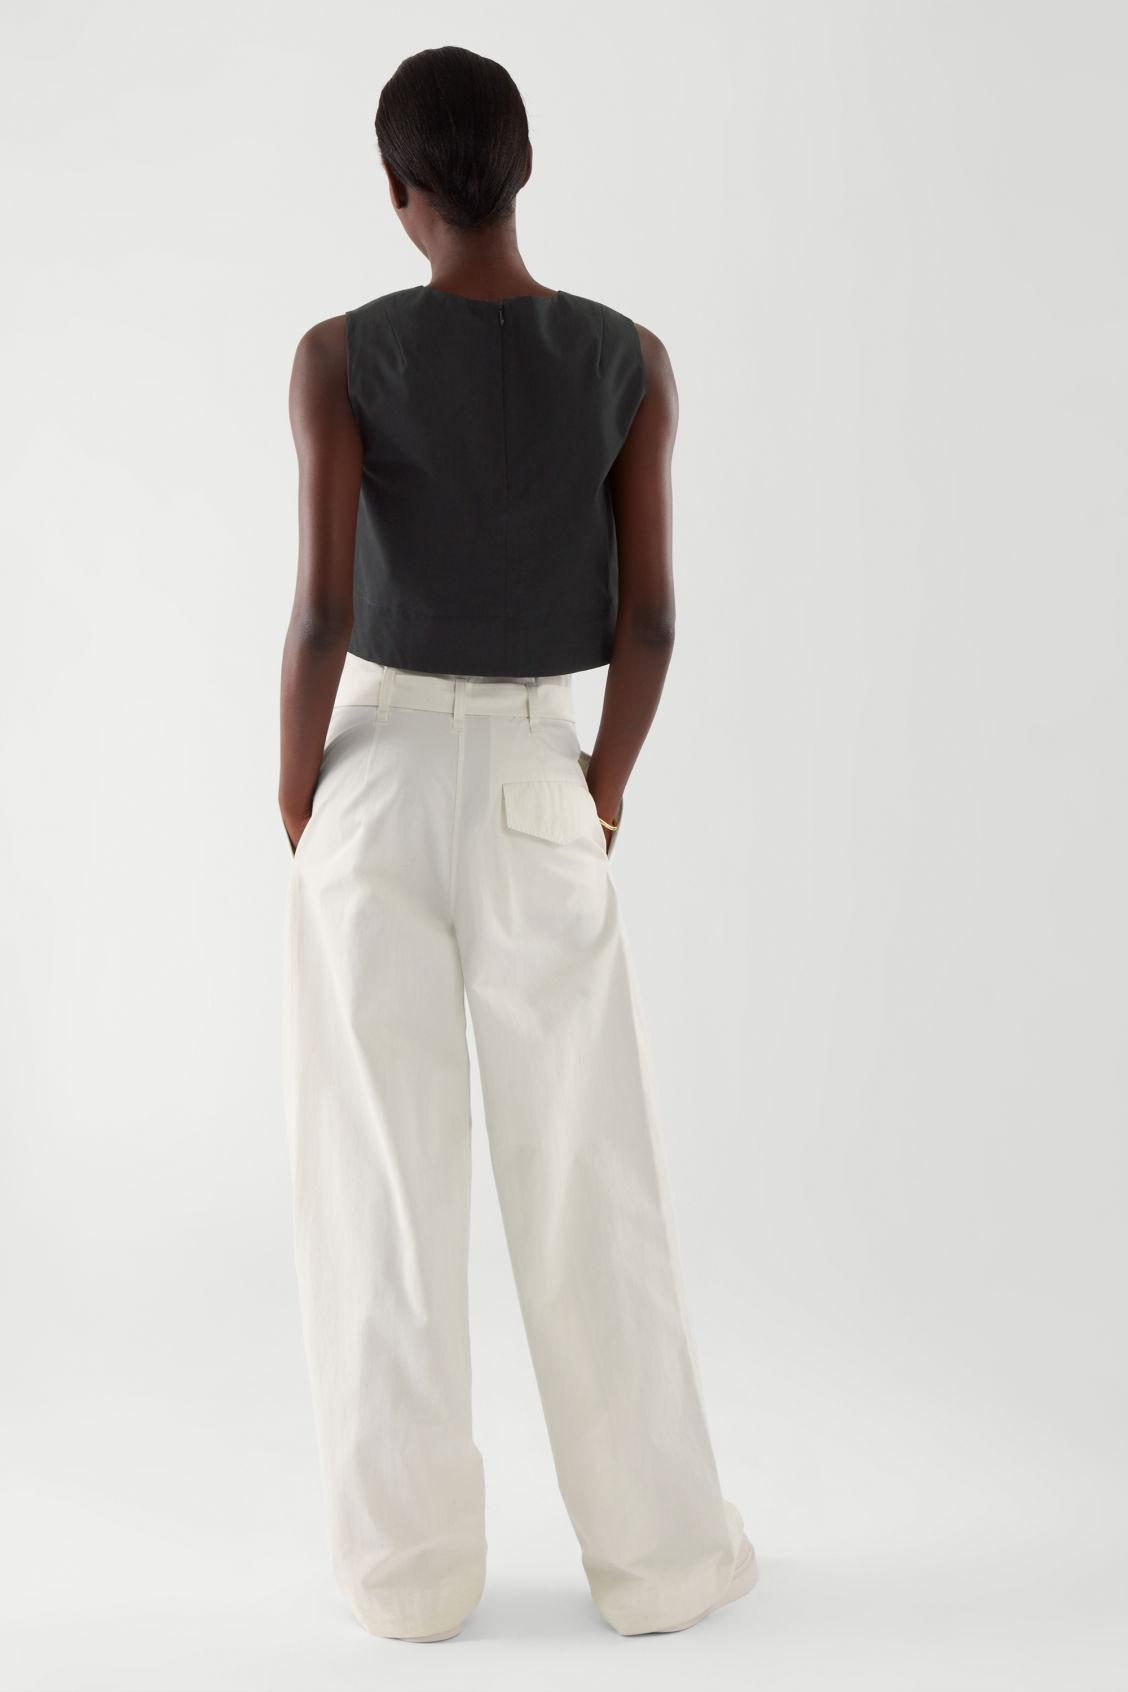 A-LINE CROPPED TOP 4